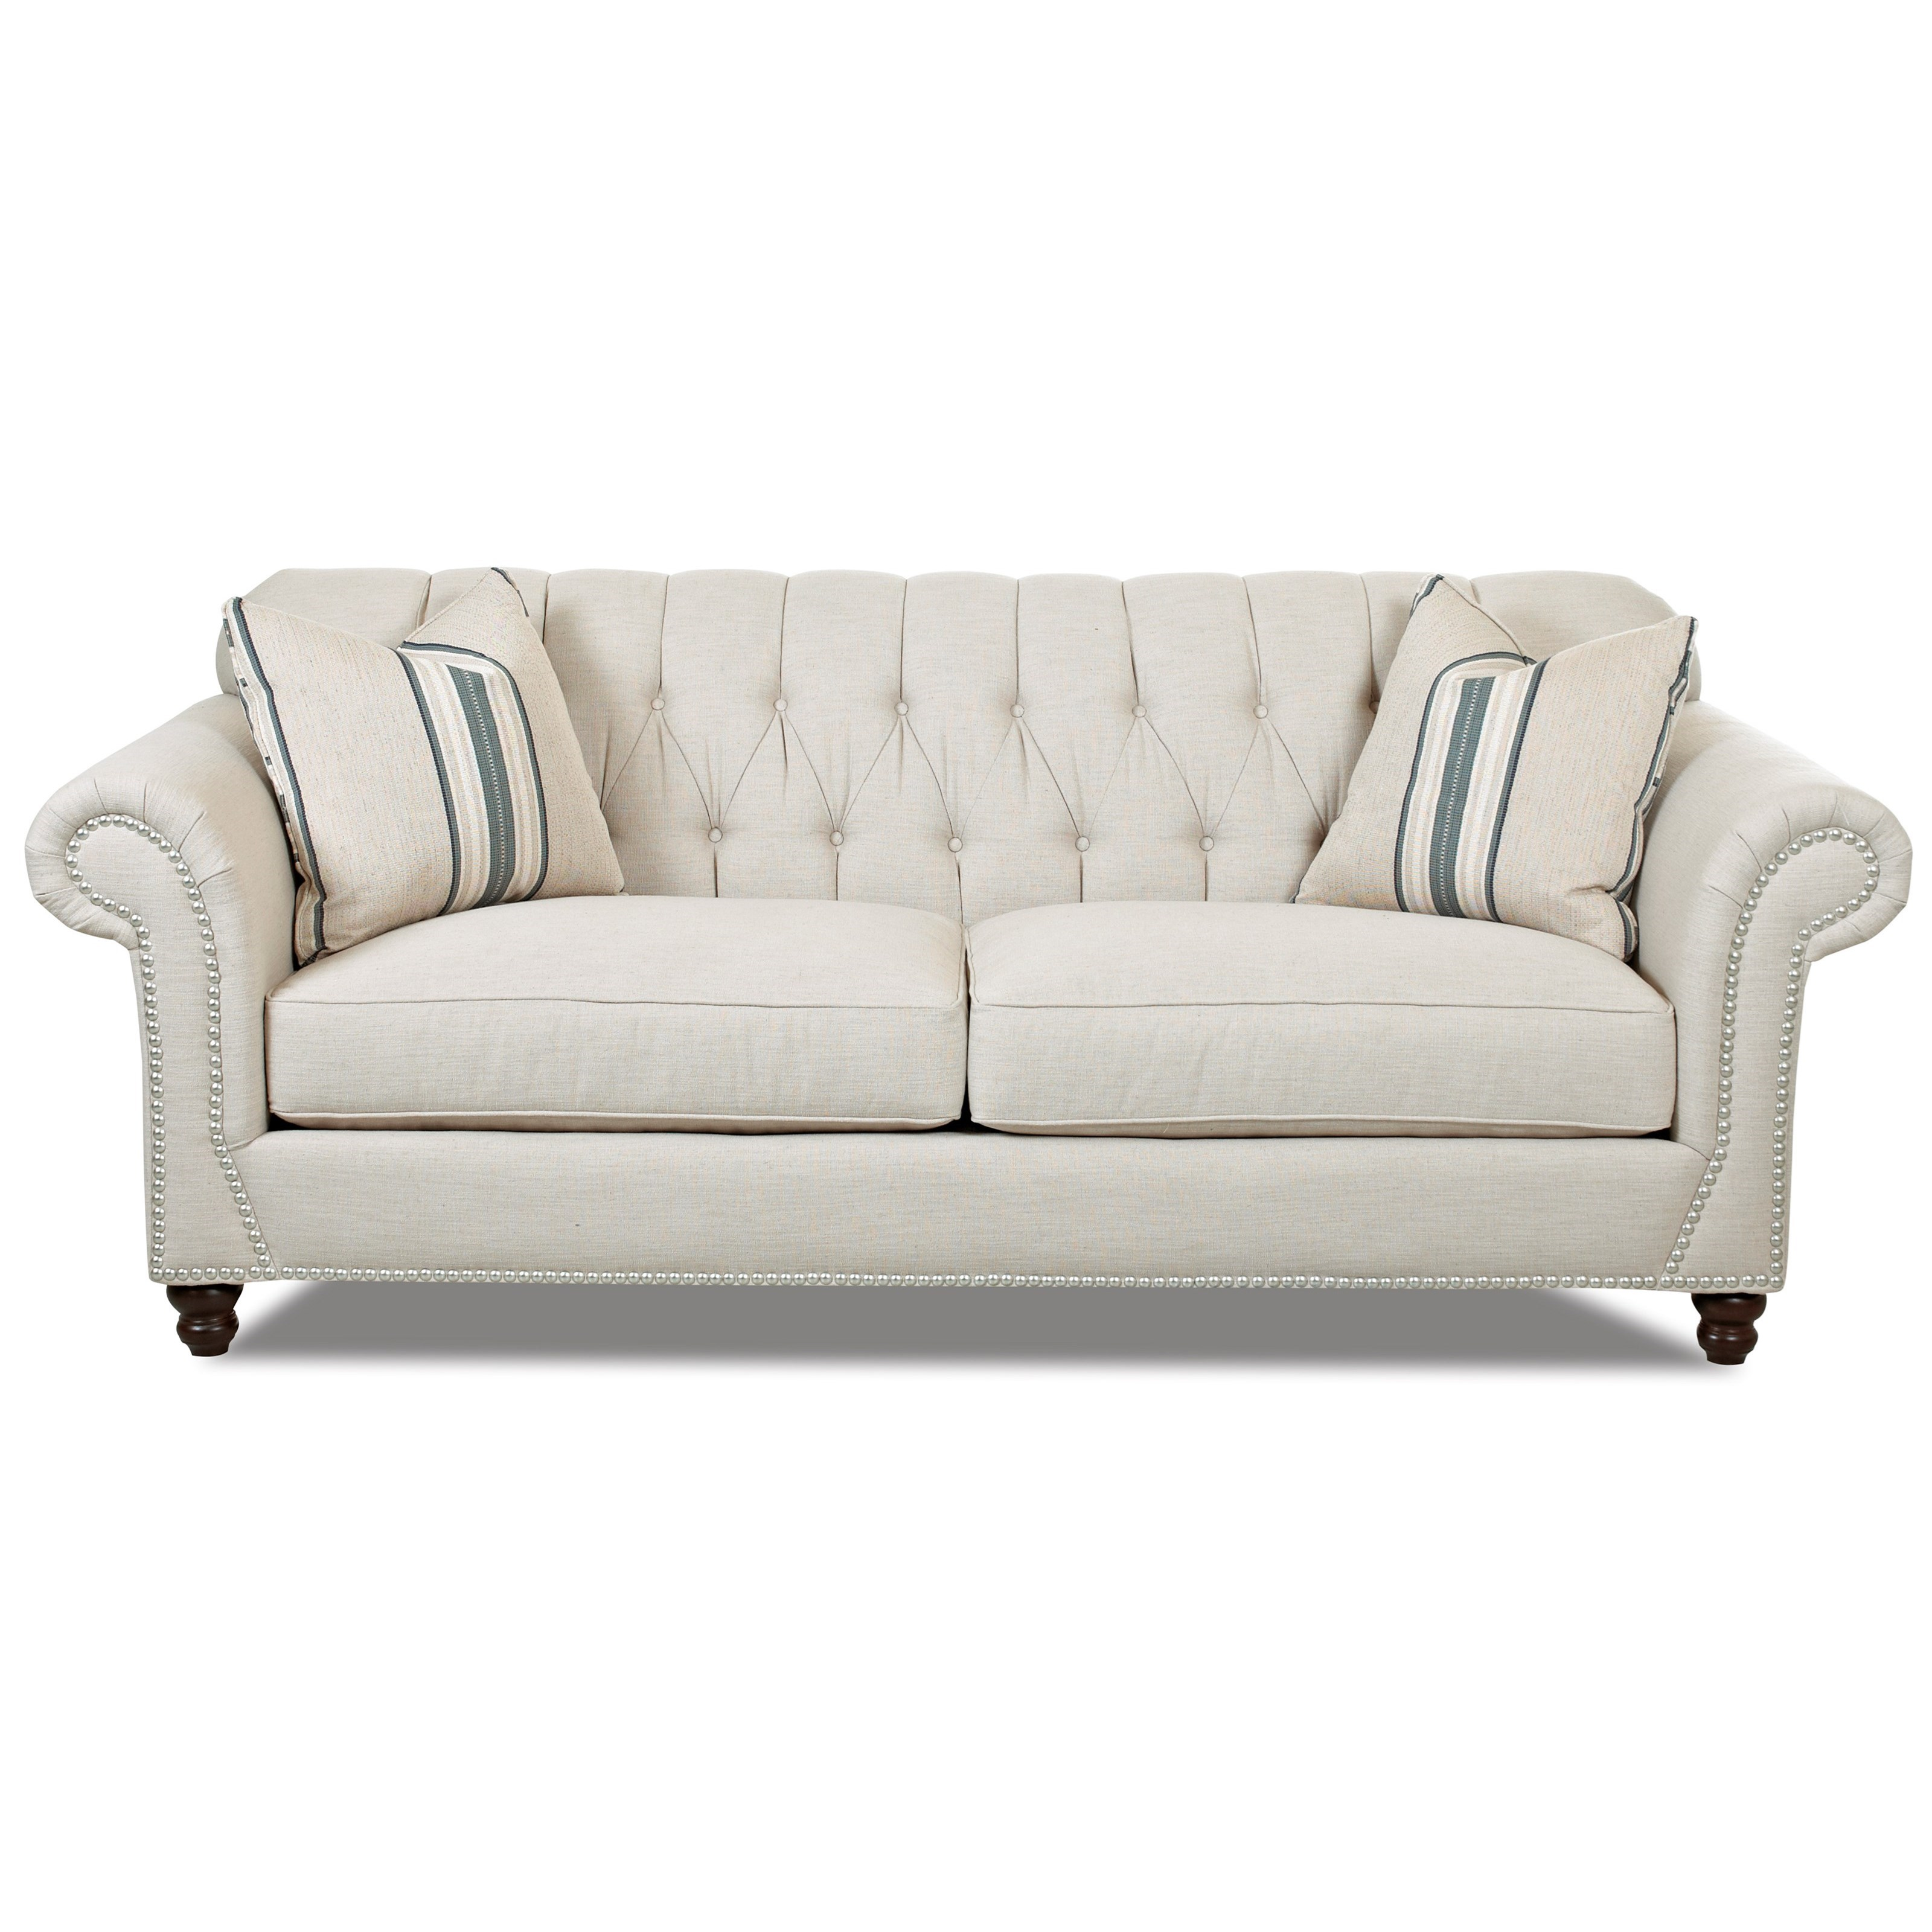 button tufted sofas outdoor loungesofa bahia traditional sofa with back rolled arms and